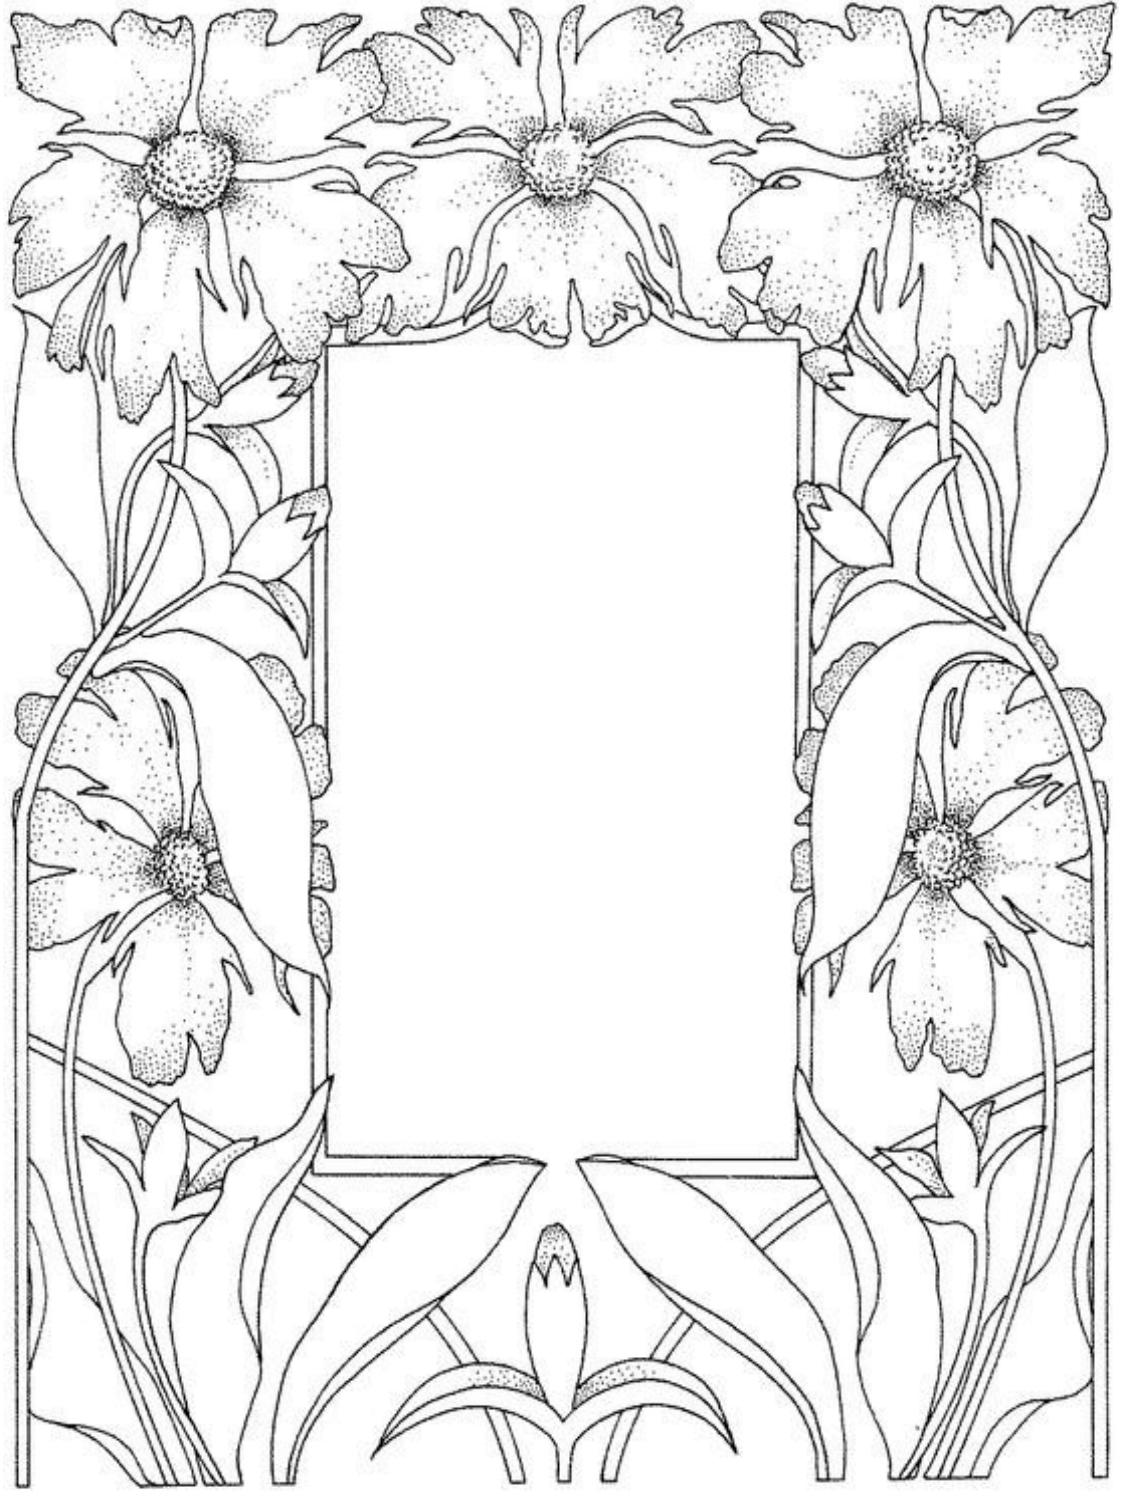 Zen archangelism blank spell pages for Blank flower coloring pages